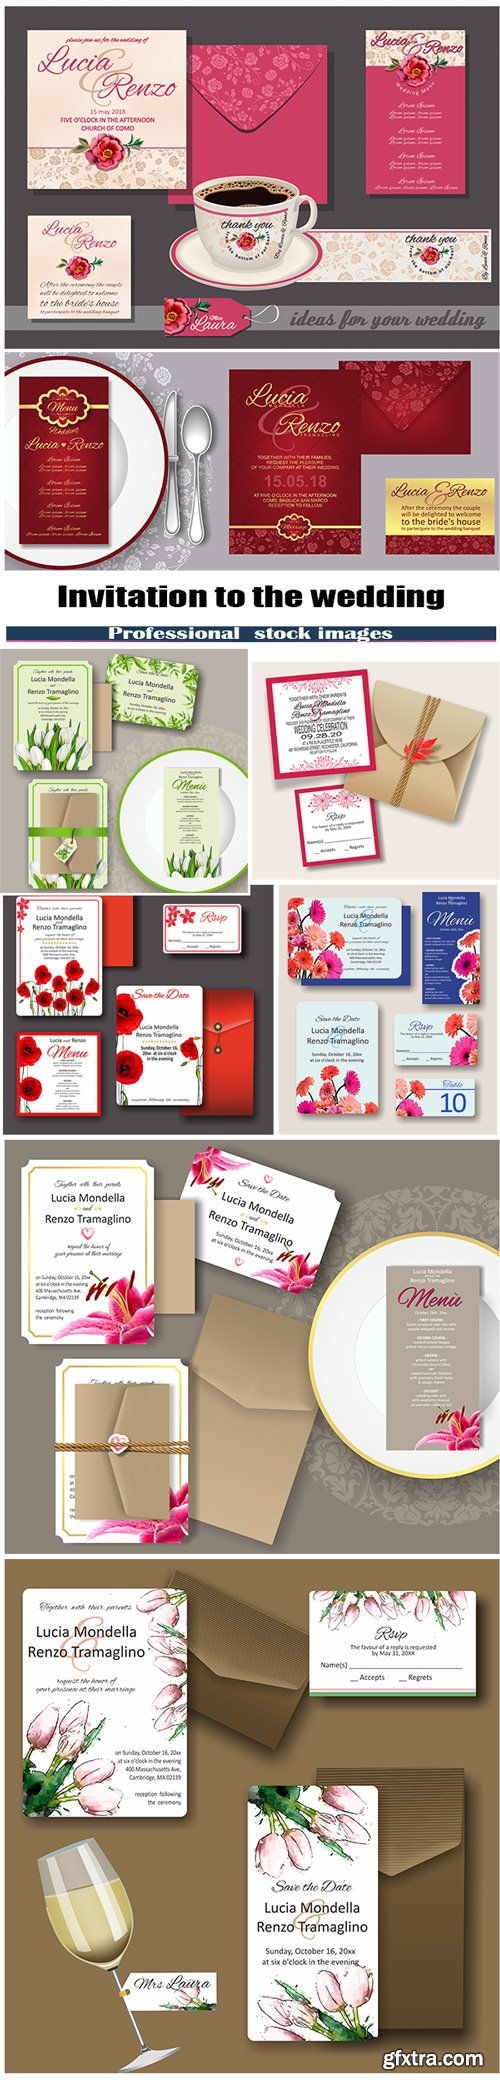 Invitation to the wedding with flowers